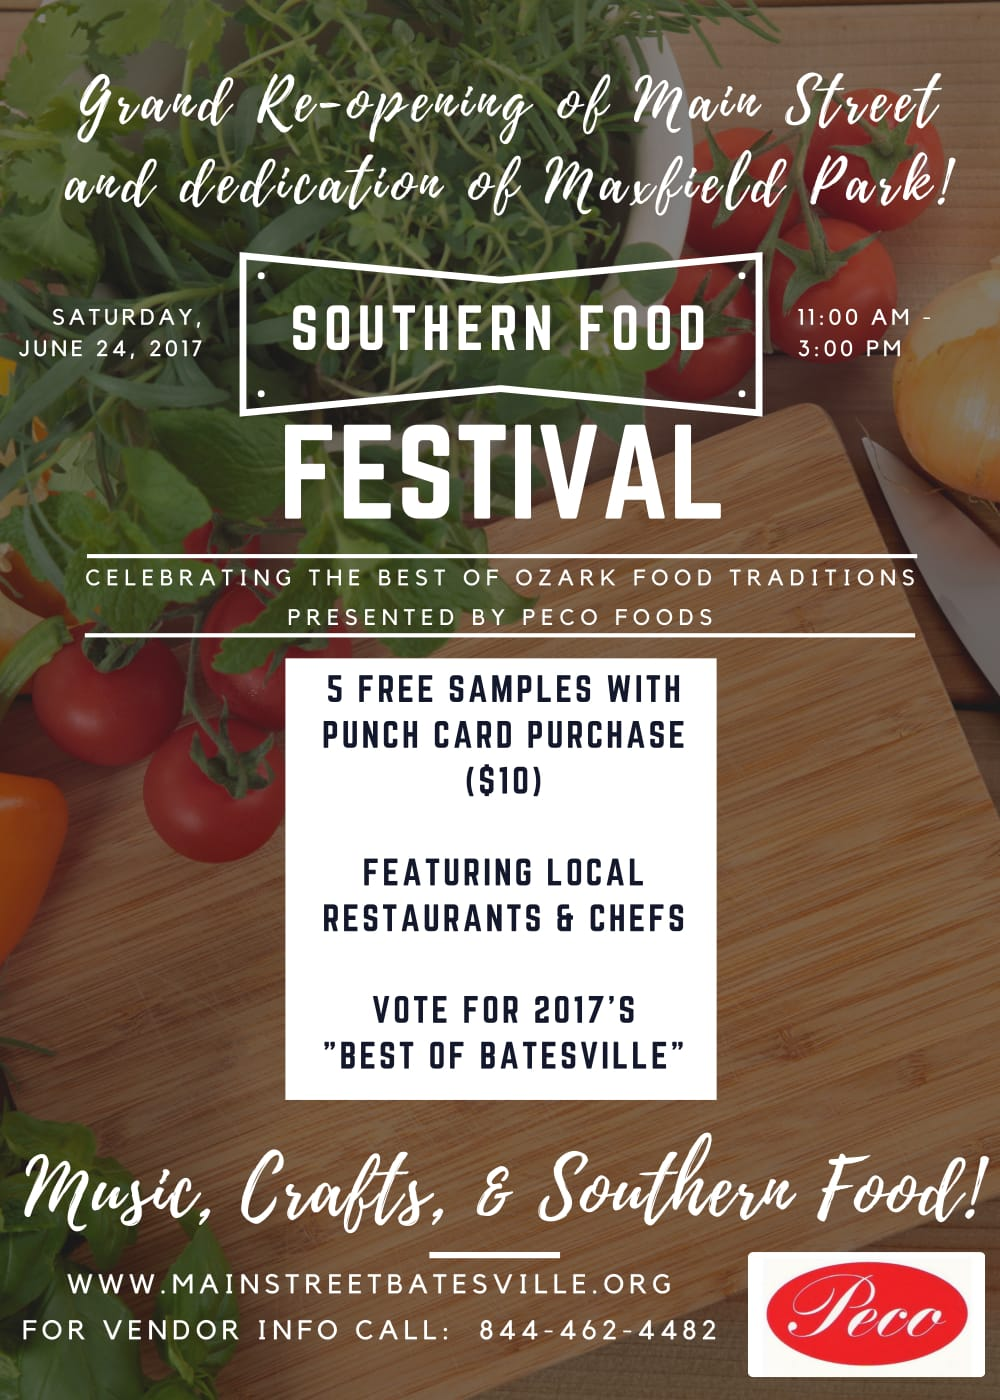 Southern Food Festival